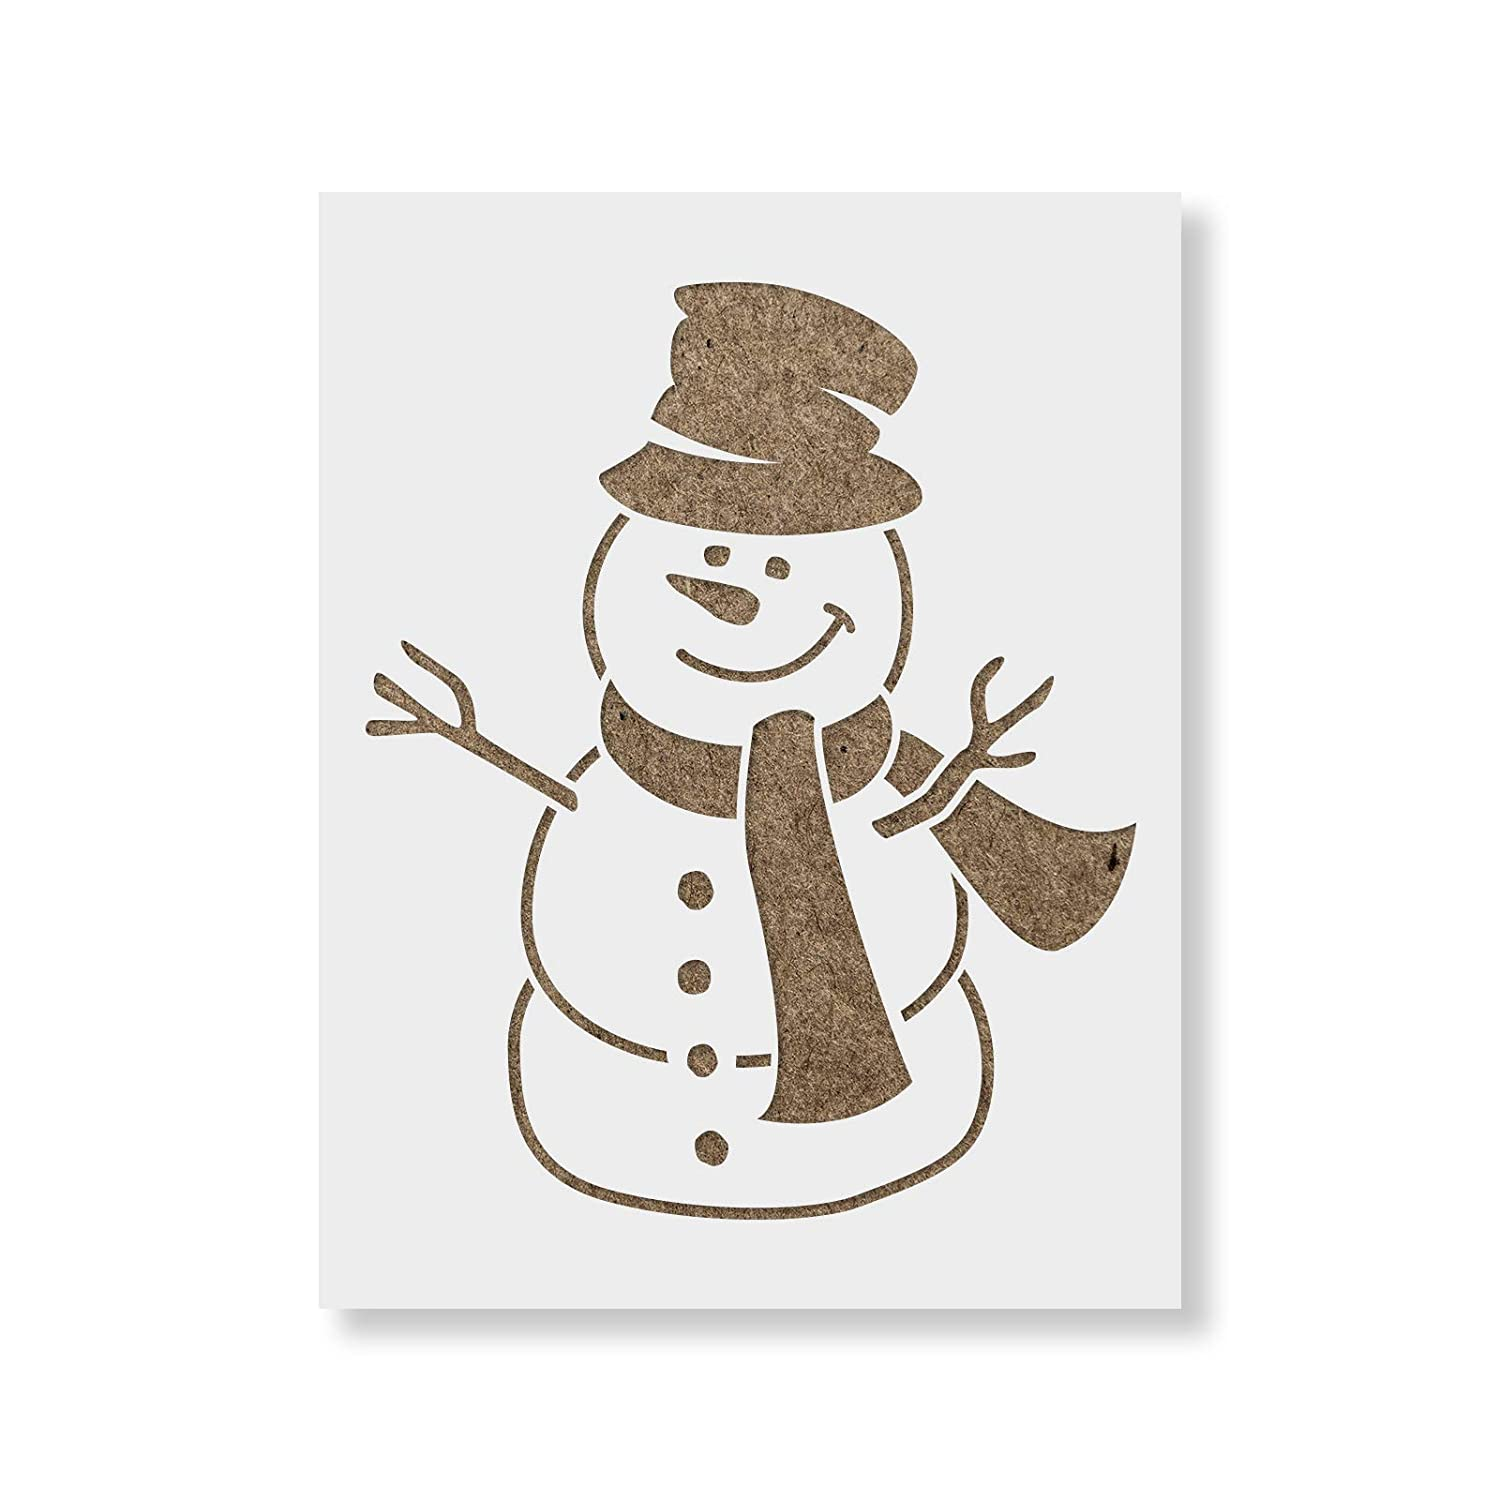 Snowman Stencil Template - Reusable Stencil with Multiple Sizes Available Stencil Revolution